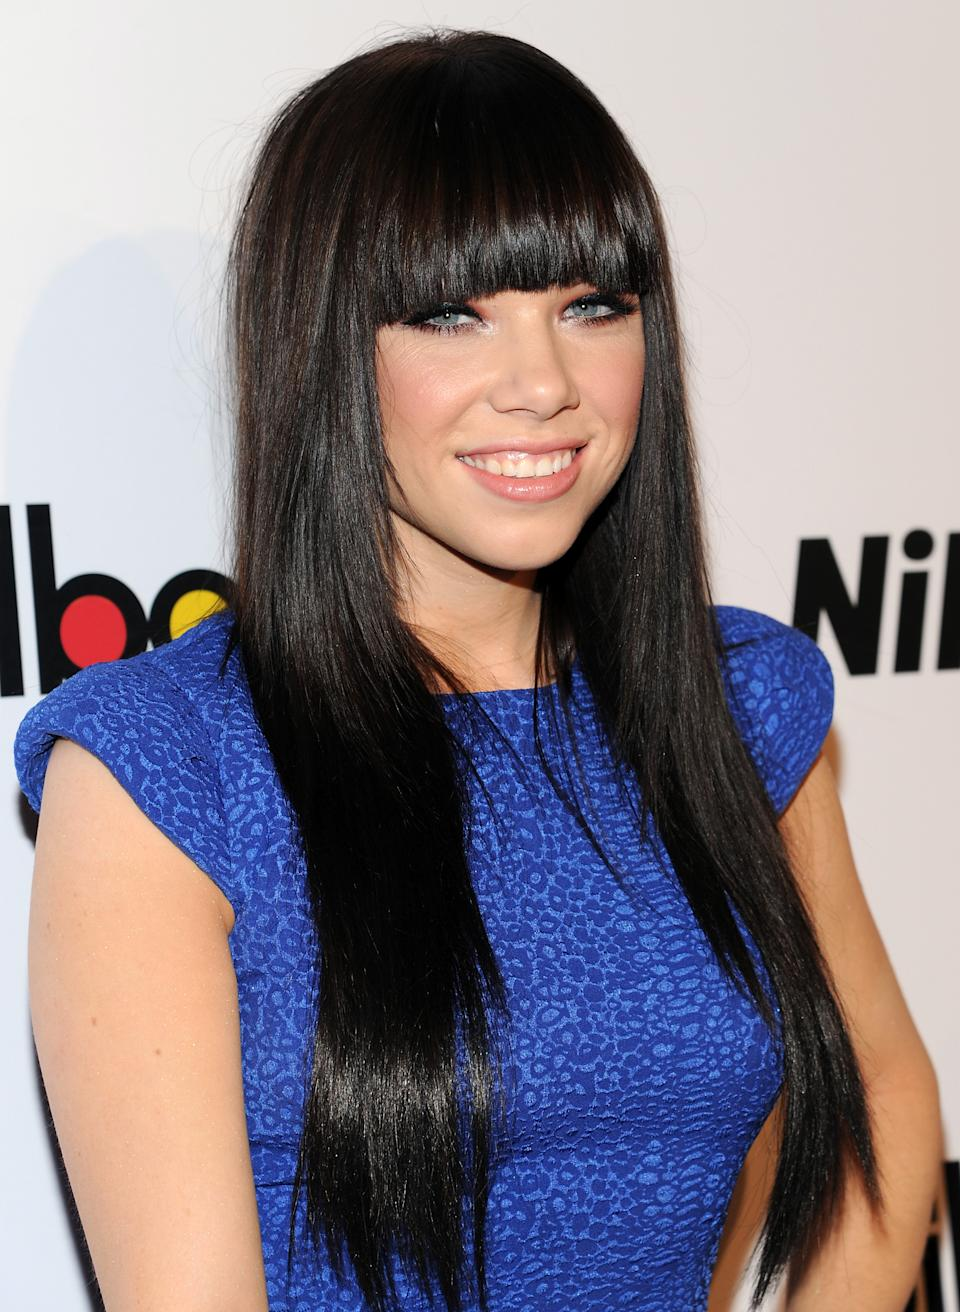 """Rising Star"" honoree, singer Carly Rae Jepsen attends Billboard's ""Women in Music 2012"" luncheon at Capitale on Friday Nov. 30, 2012 in New York. (Photo by Evan Agostini/Invision/AP)"